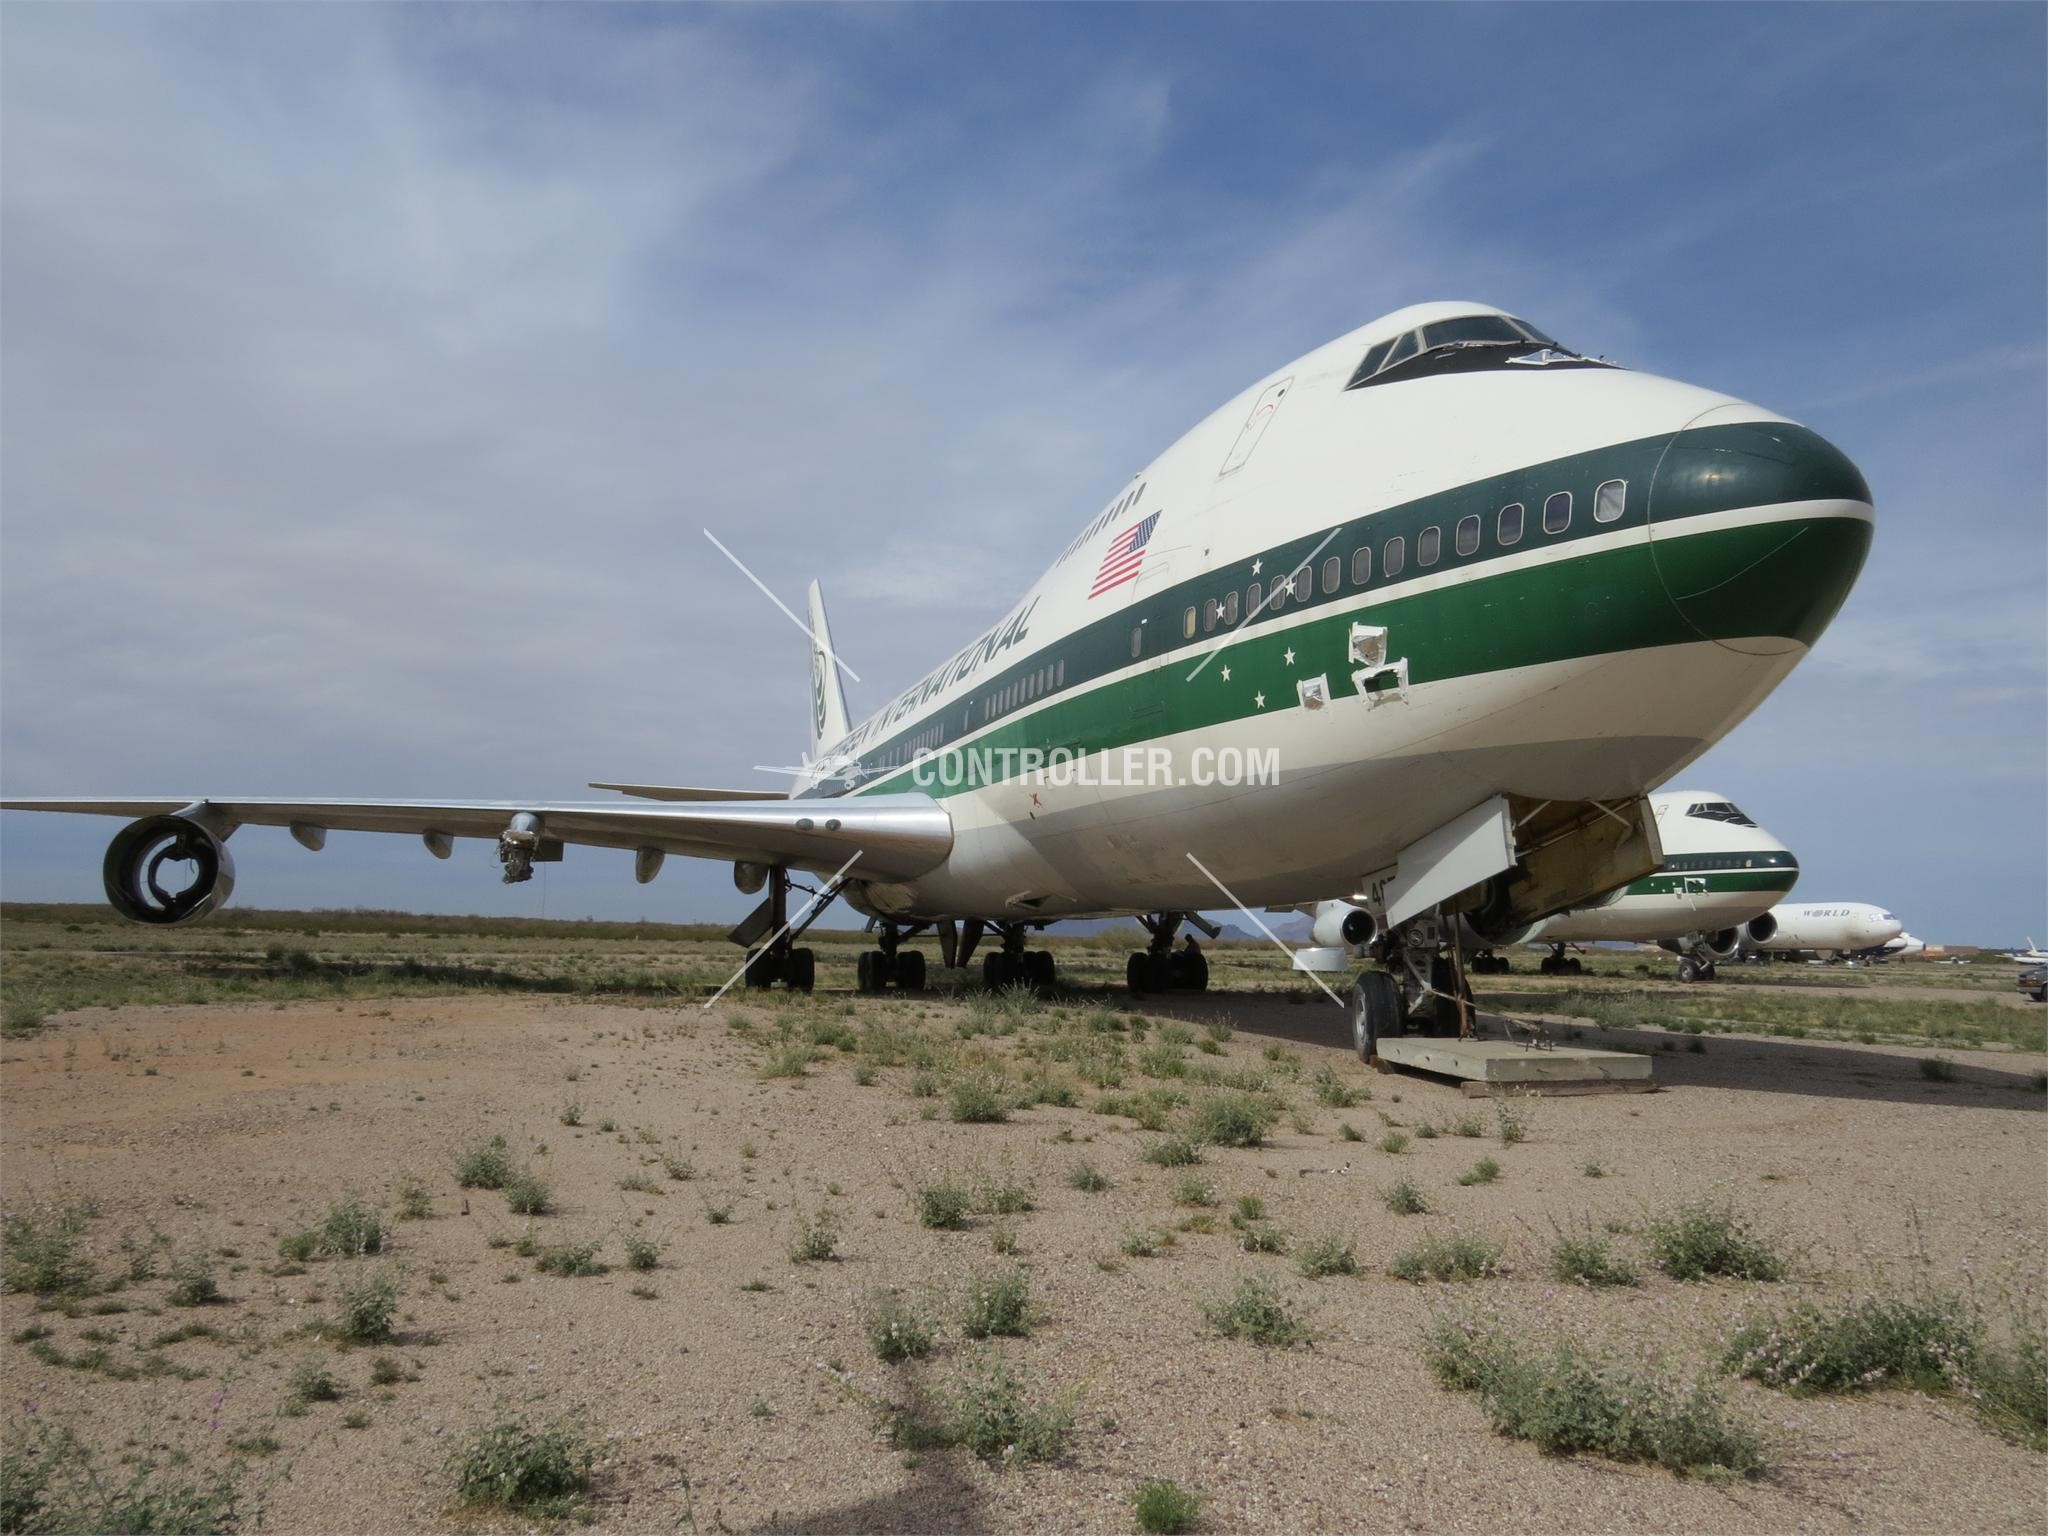 Used Planes For Sale >> So You Can Buy An Old Soviet Fighter Jet Or A Boeing 747 Just Like